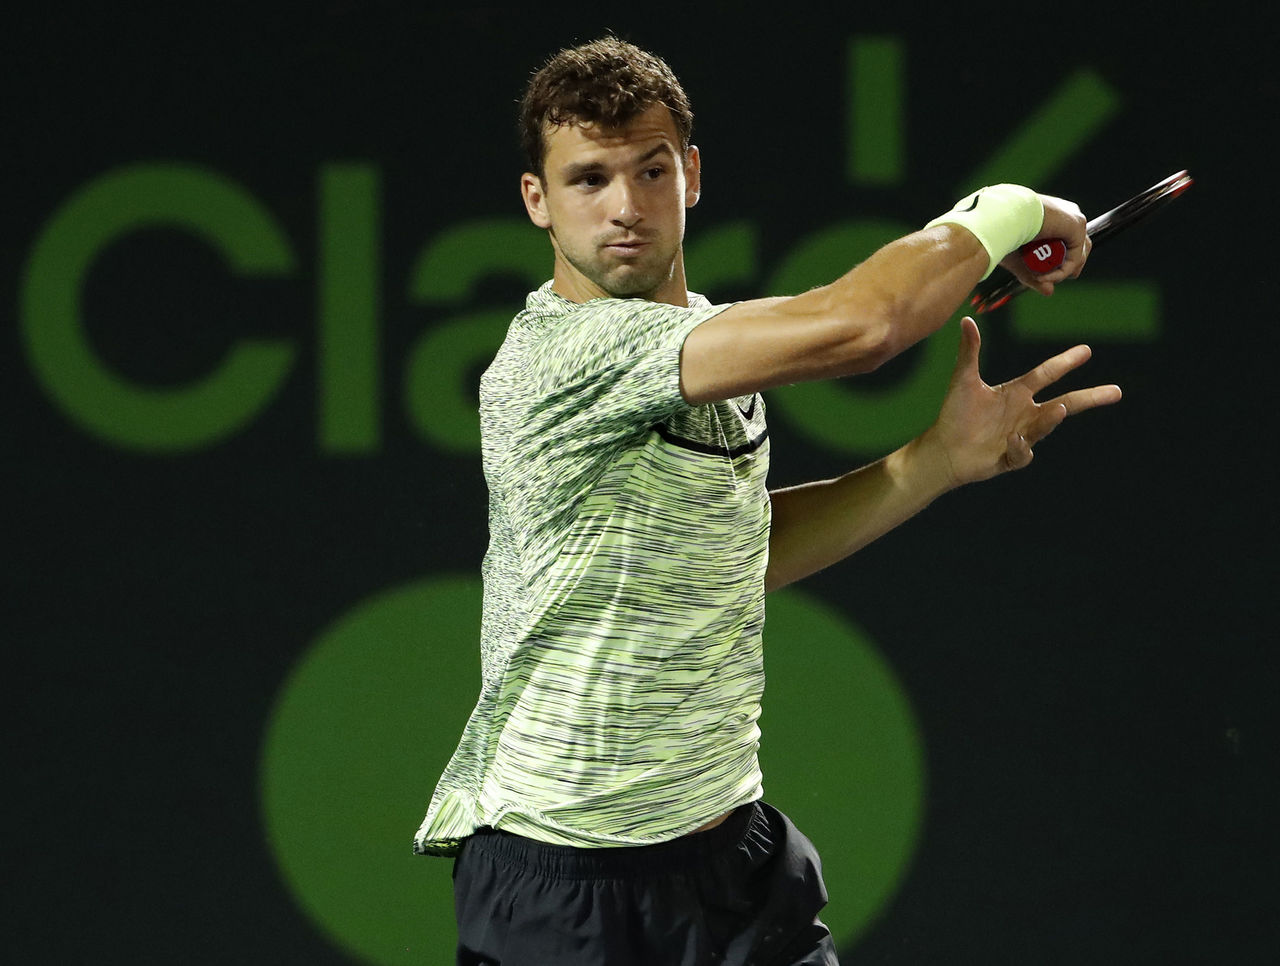 Cropped 2017 03 25t021327z 179961276 nocid rtrmadp 3 tennis miami open